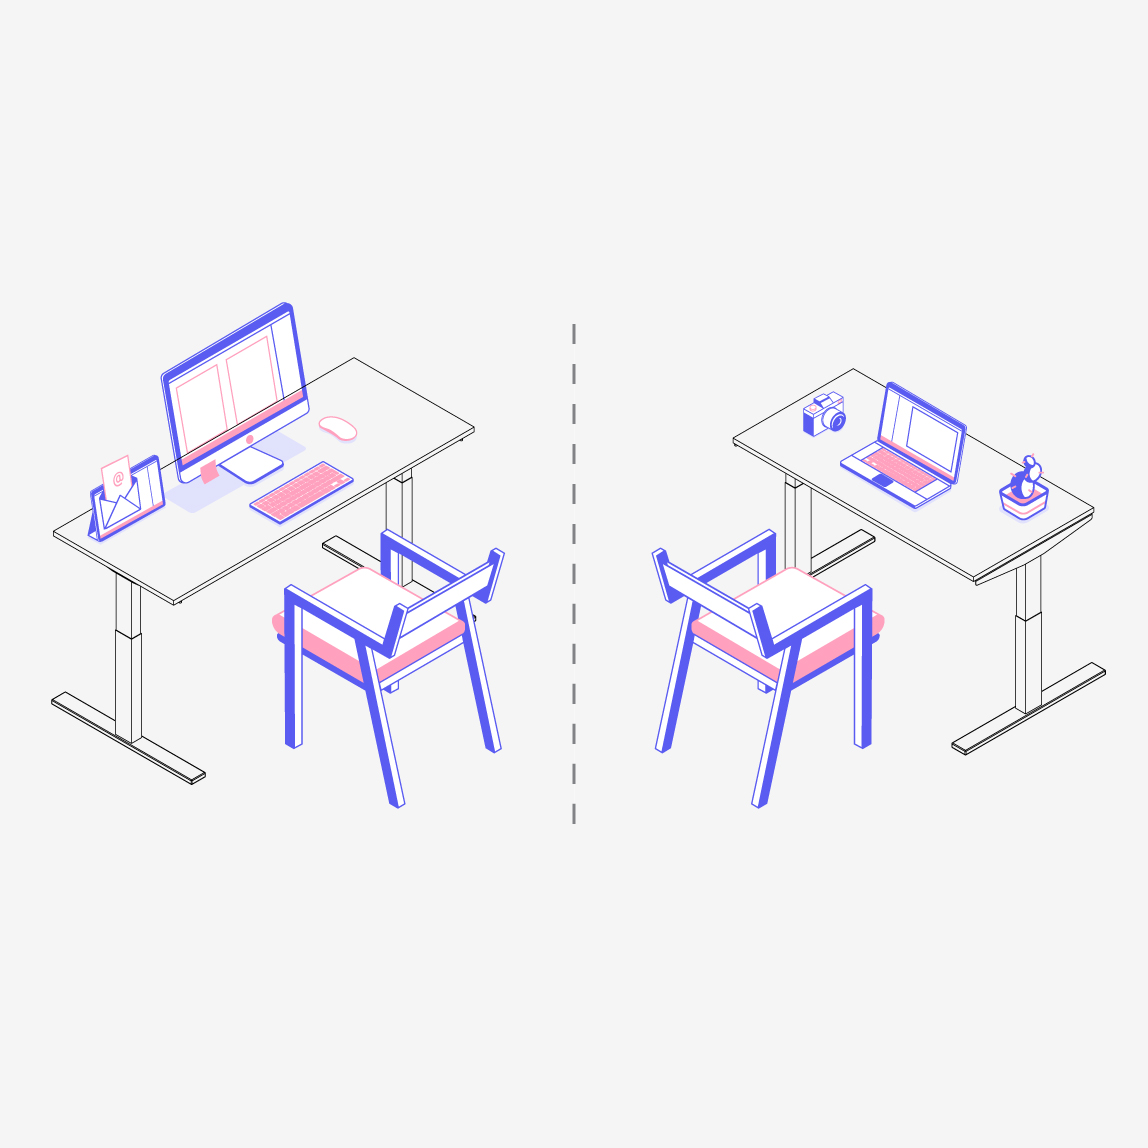 Grey & Sanders Standing desk sitting position diagram with left: Desktop layout, and right: Laptop layout